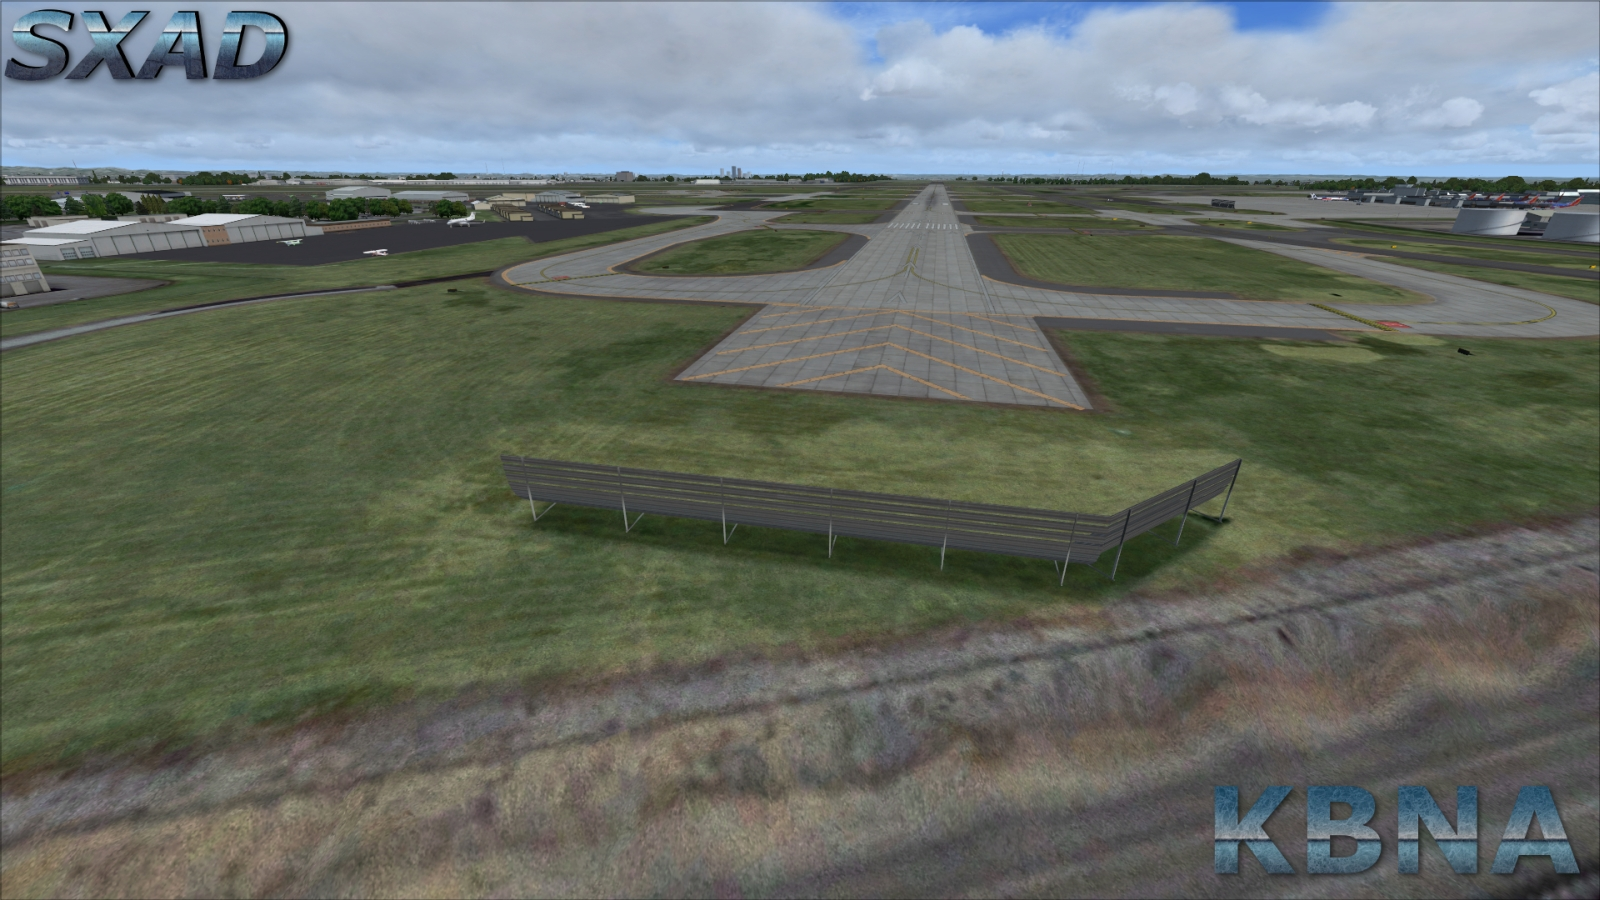 SXAIRPORTDESIGN - NASHVILLE INTERNATIONAL AIRPORT KBNA FSX P3D